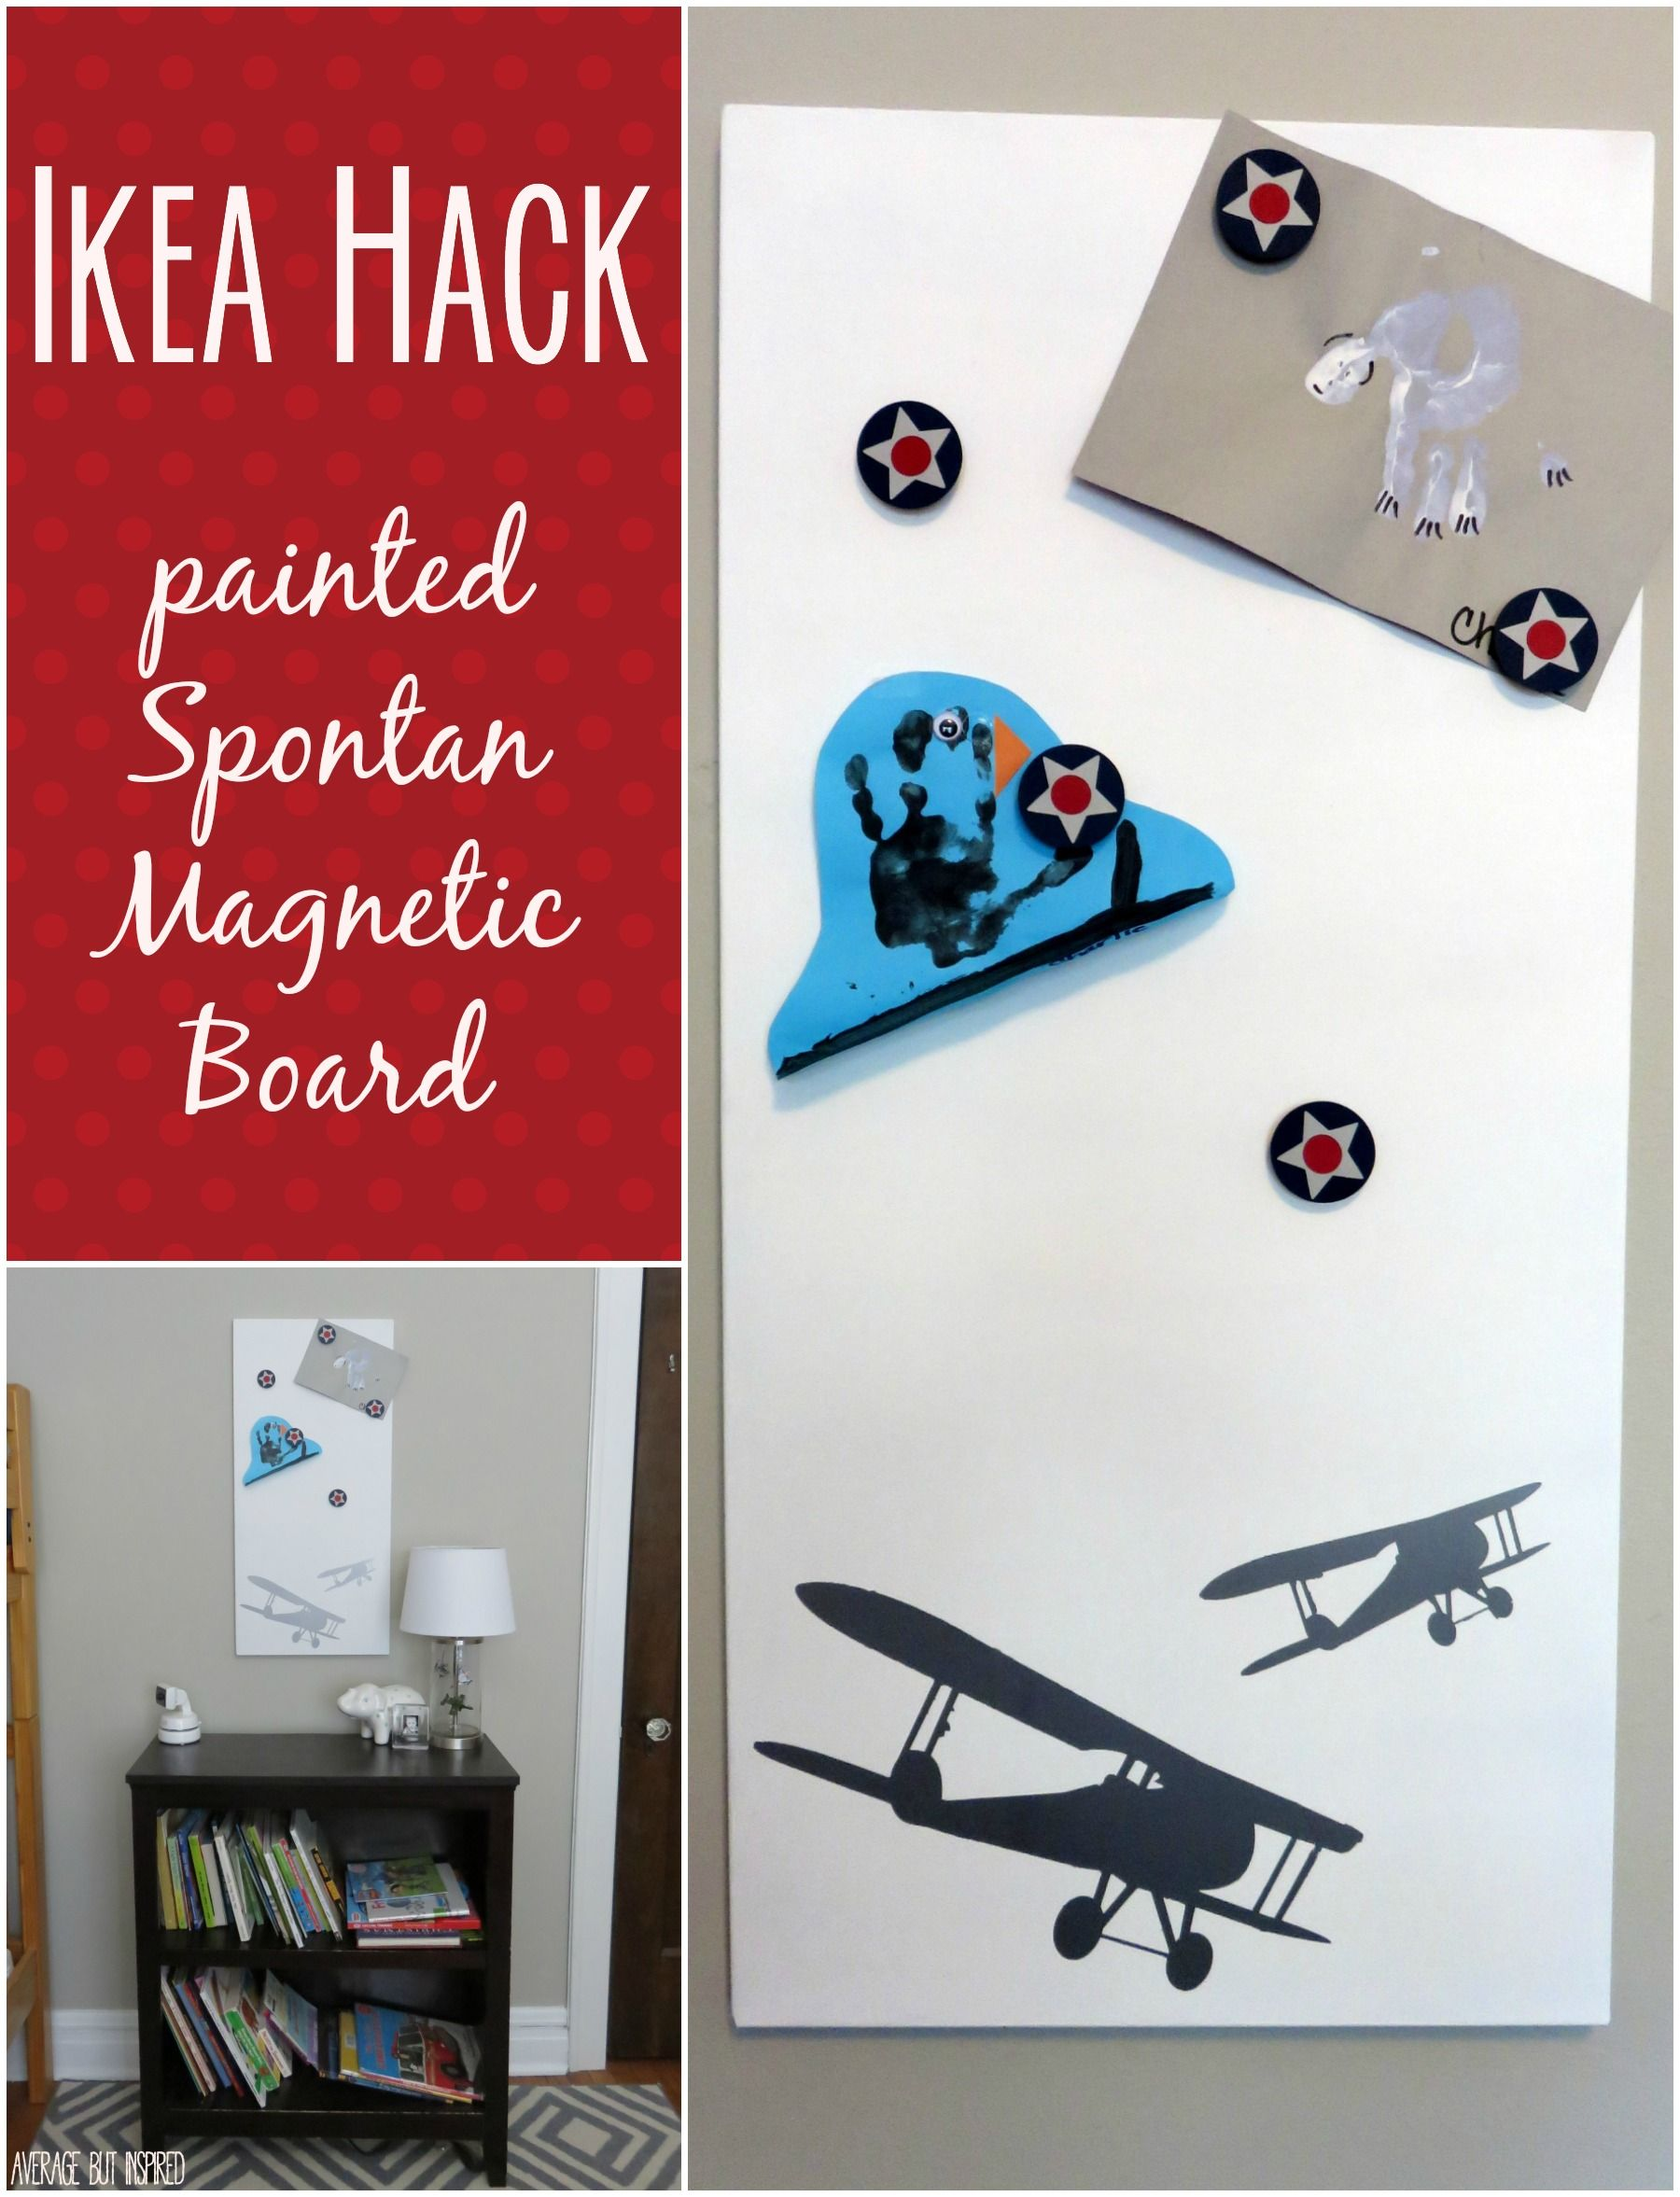 IKEA Hack The Spontan Magnetic Board Painted and Beautified